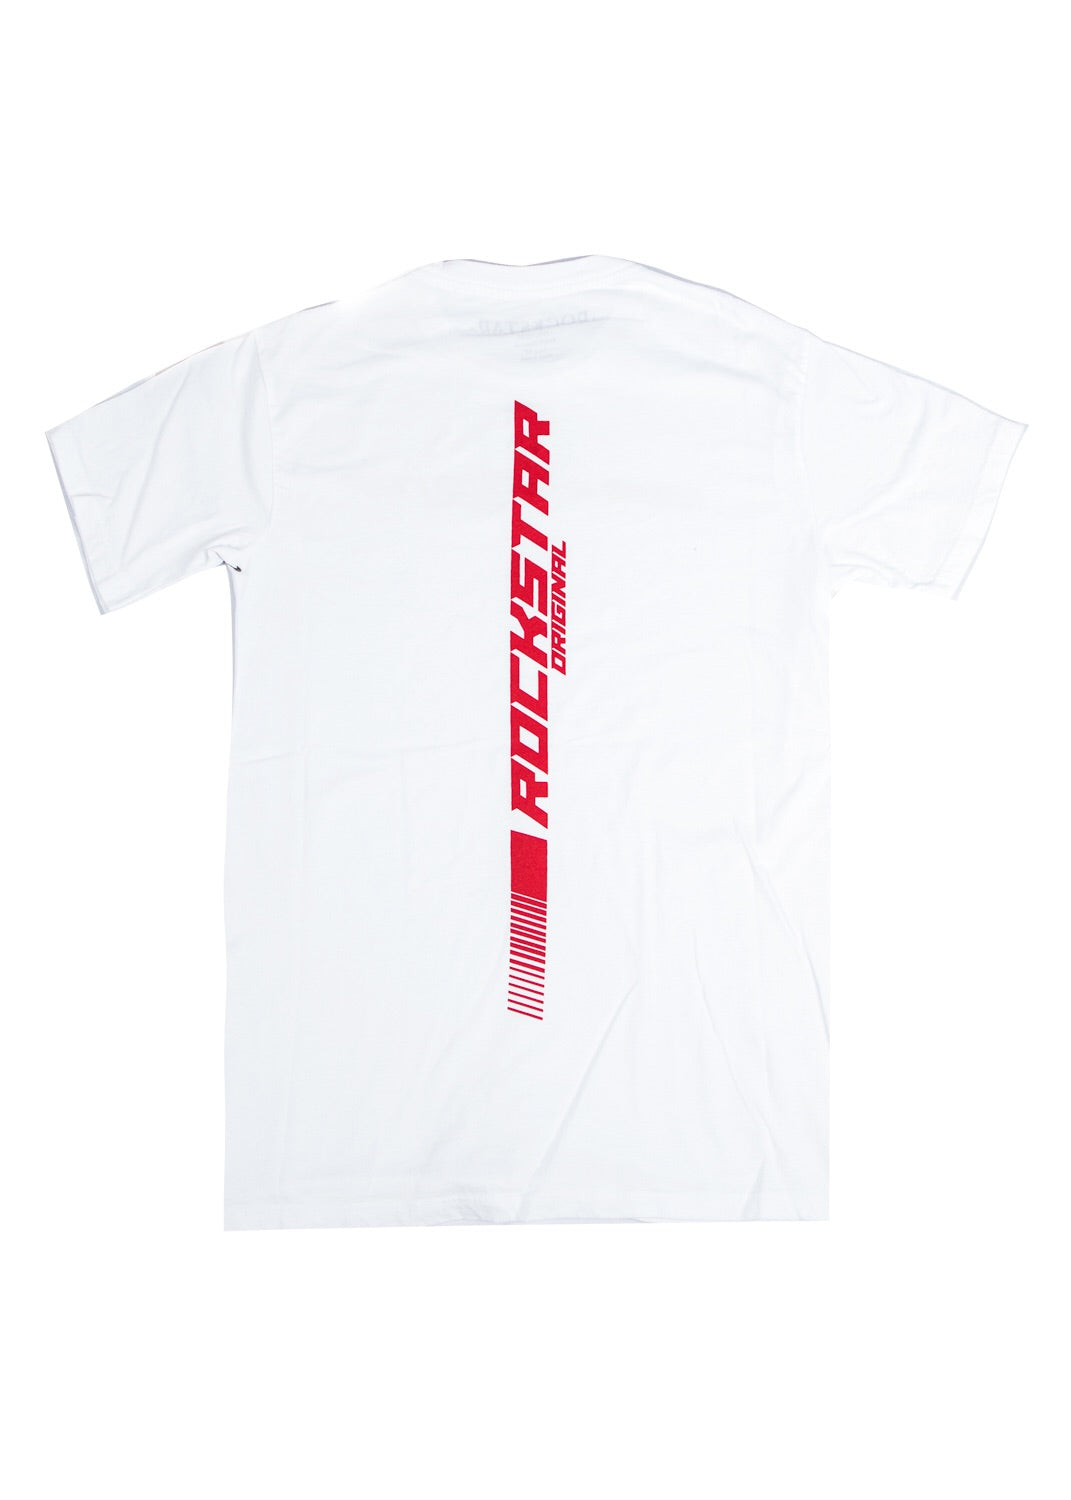 Roy T-shirt (white)